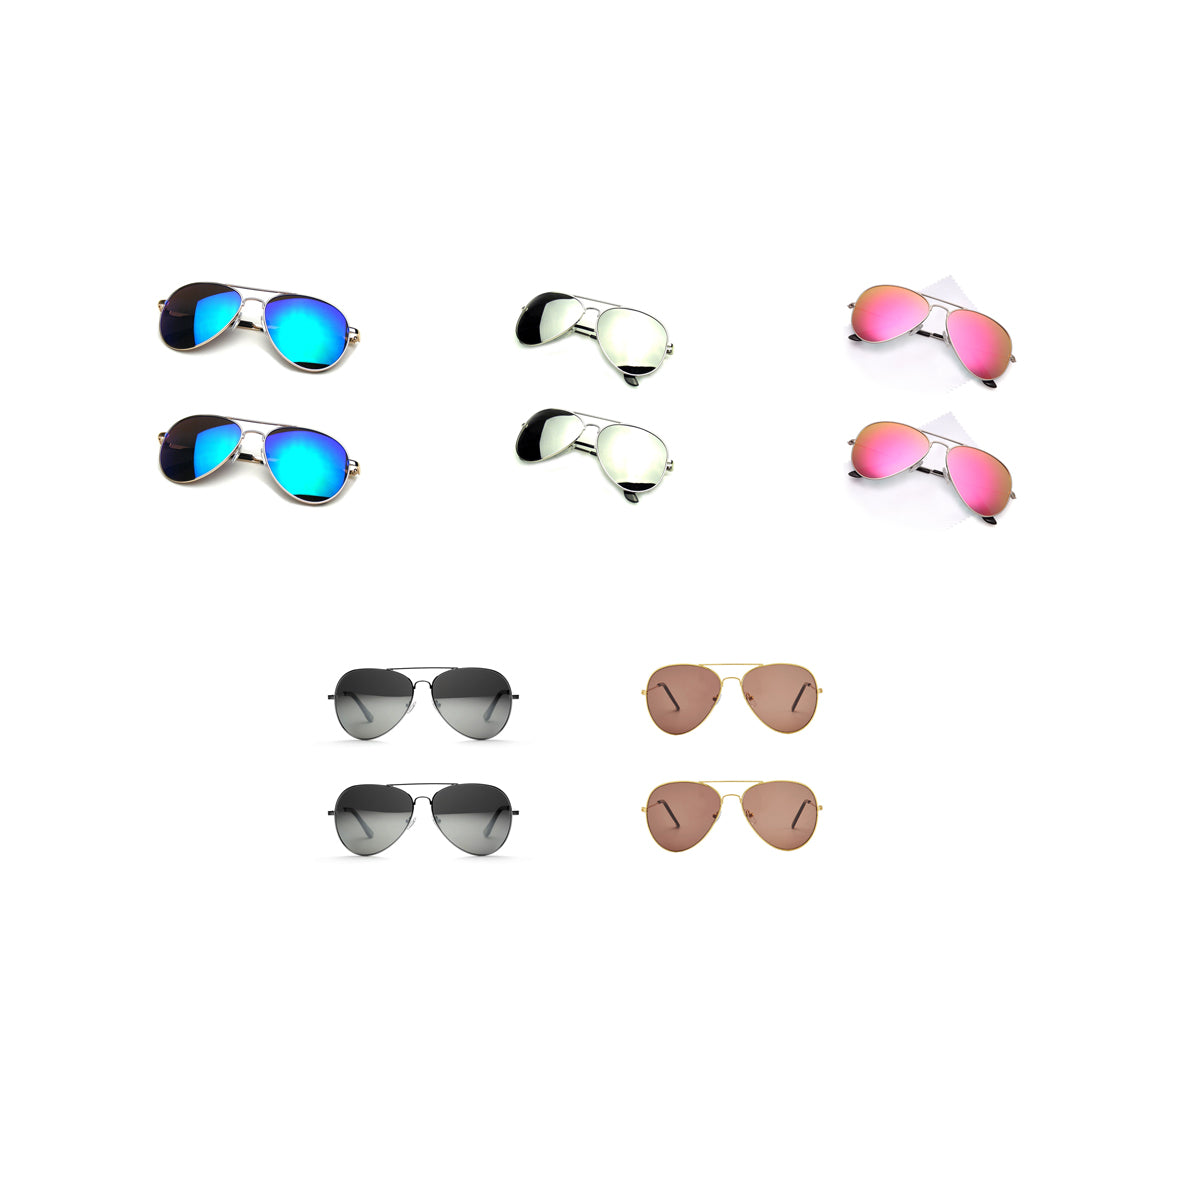 shopify-Vintage Style Aviator Mirrored Sunglasses - Silver, Blue, Black, Pink or Bronze-1